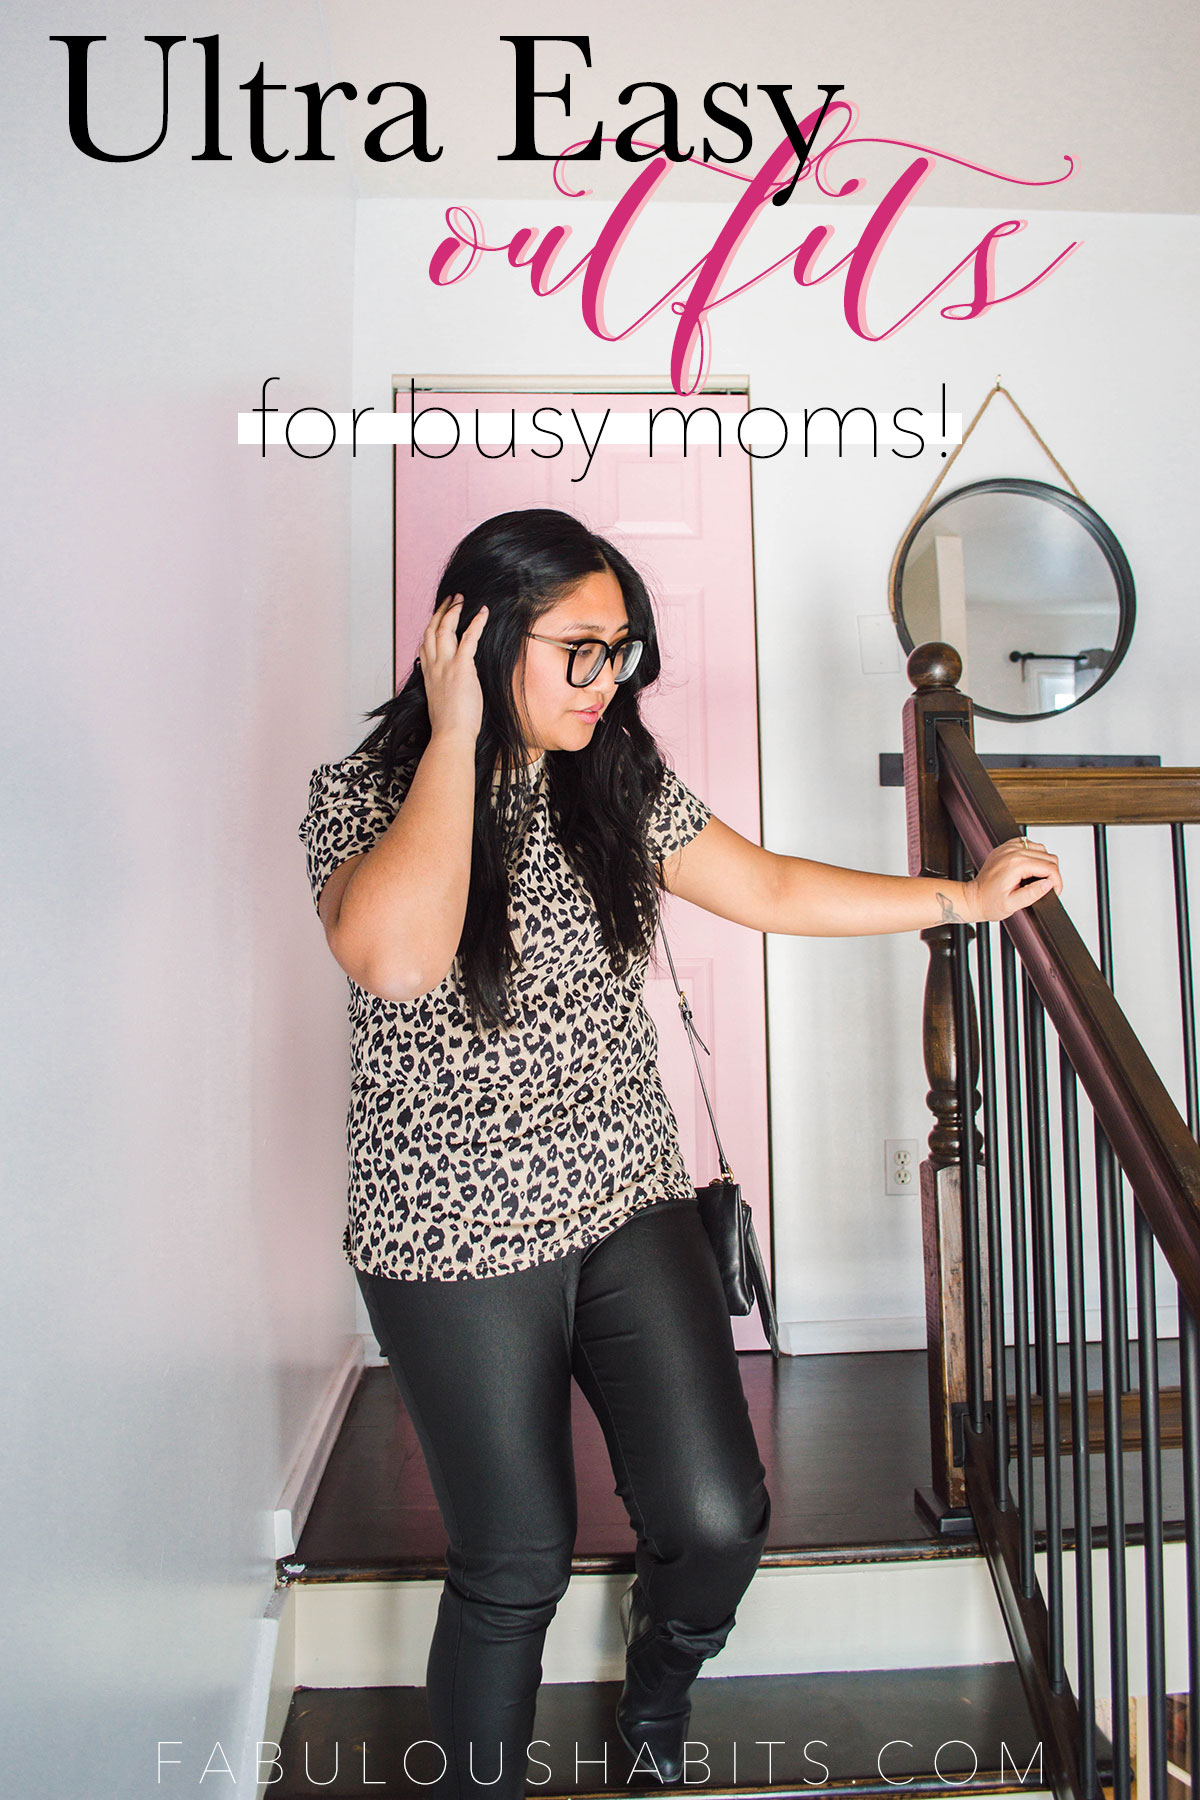 Who knew that a simple leopard print shirt could go such a long way? Today, I put together 4 fun outfits using the same t-shirt - get ready for some style inspo! #leopardprintshirt